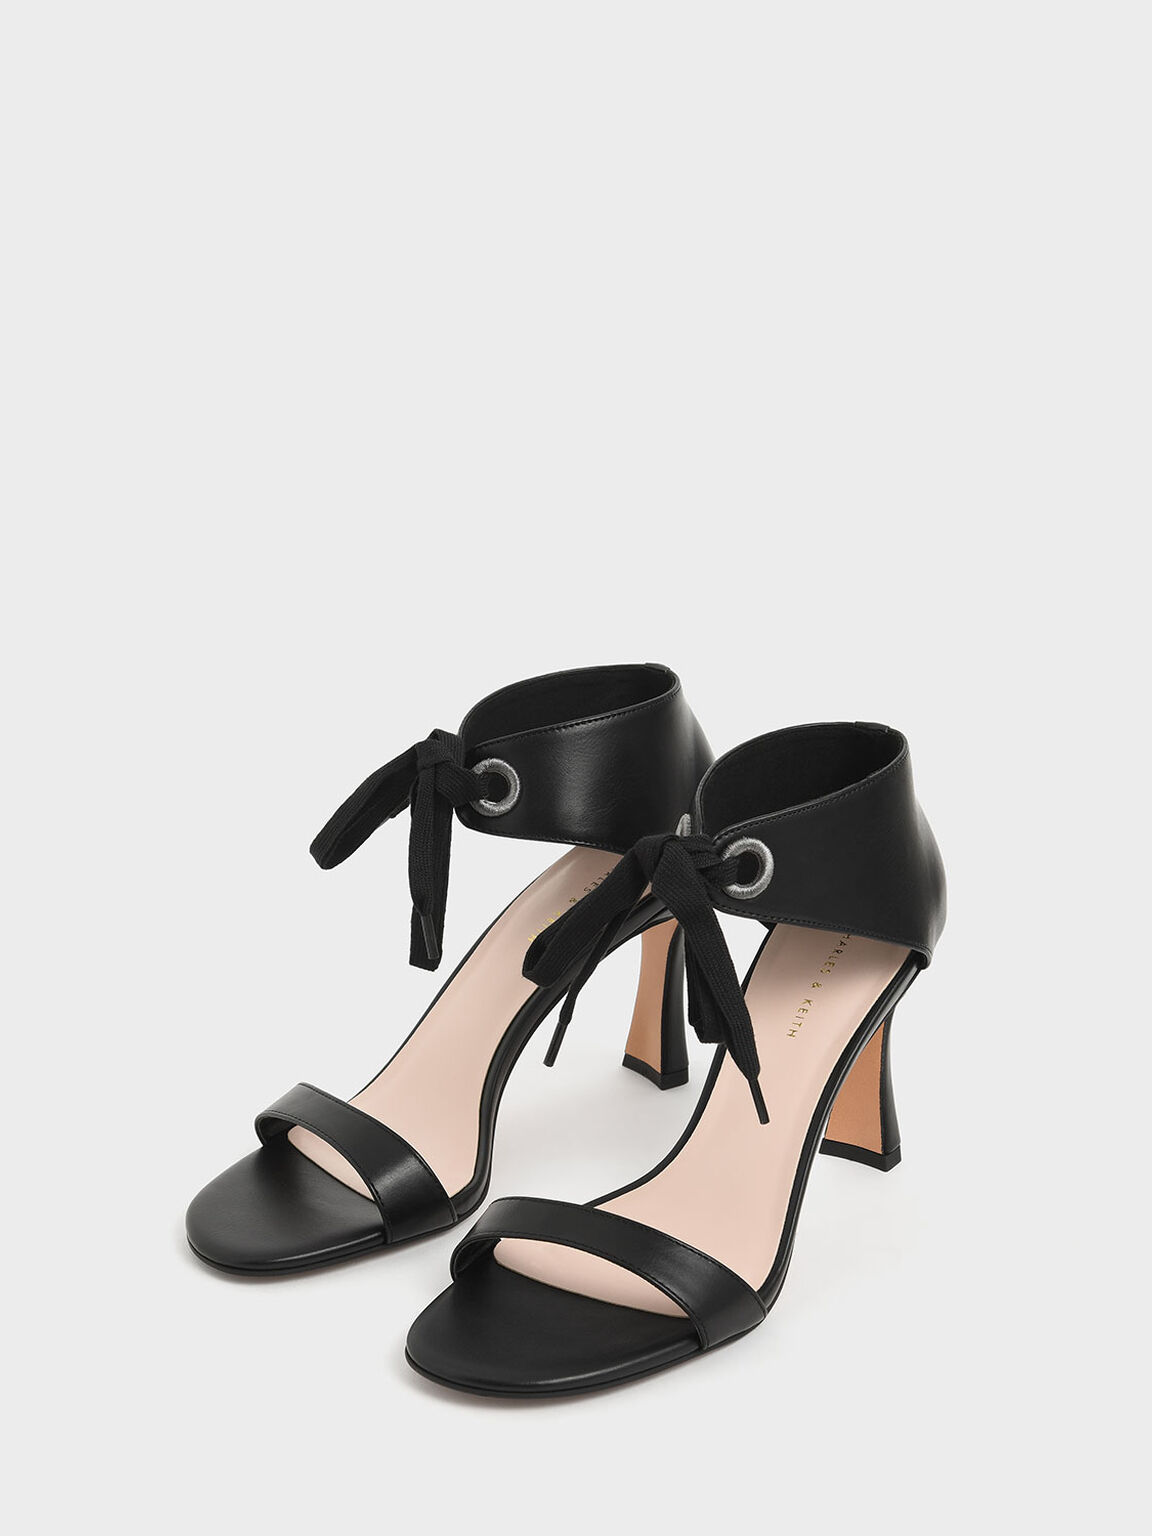 Bow Ankle Strap Sculptural Heel Sandals, Black, hi-res